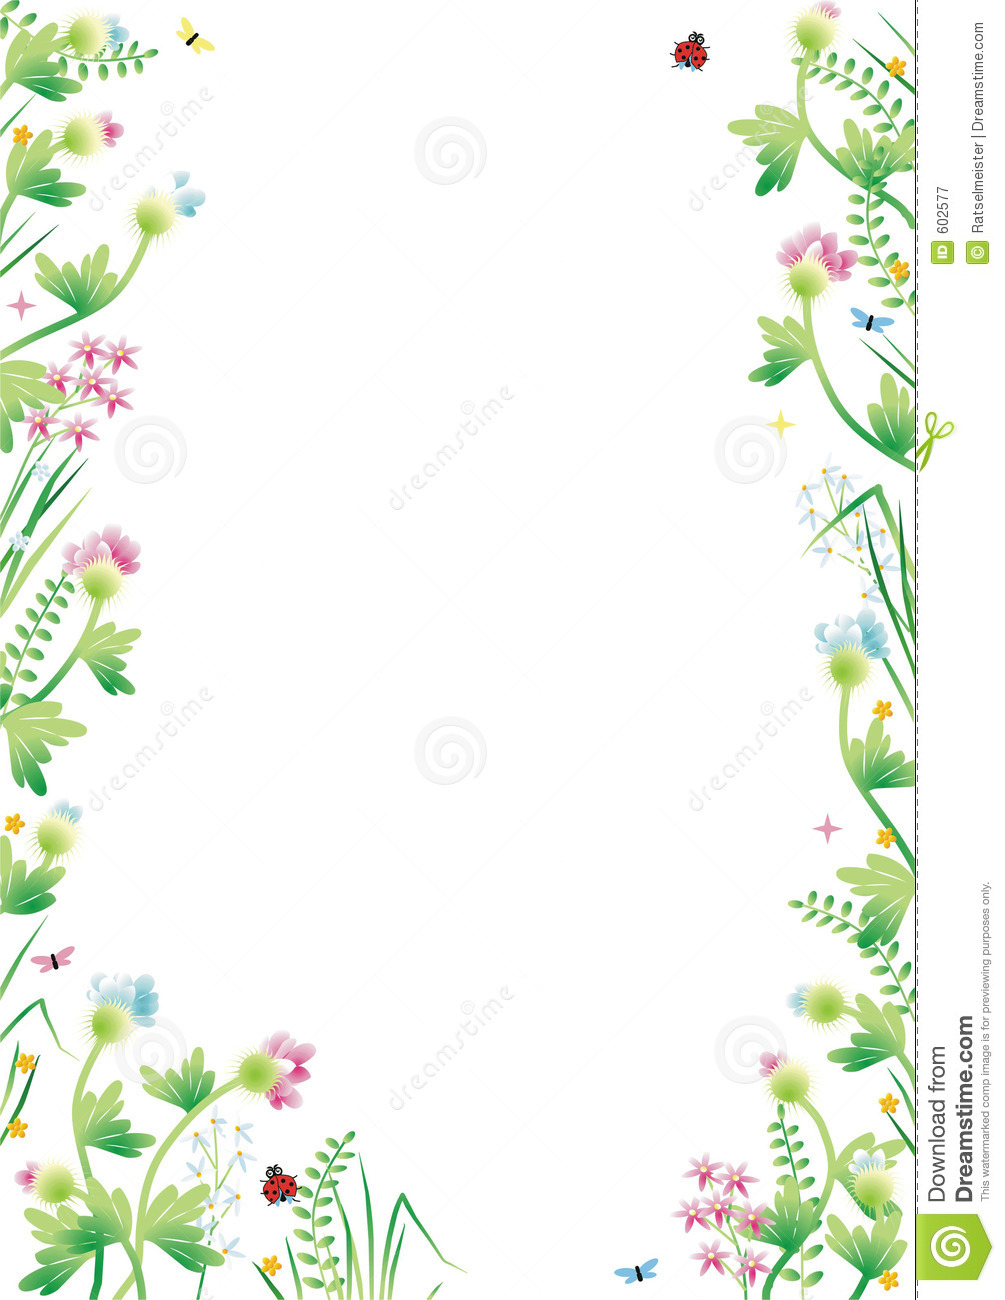 Fantasy Garden Background 3 Royalty Free Stock Photography ...